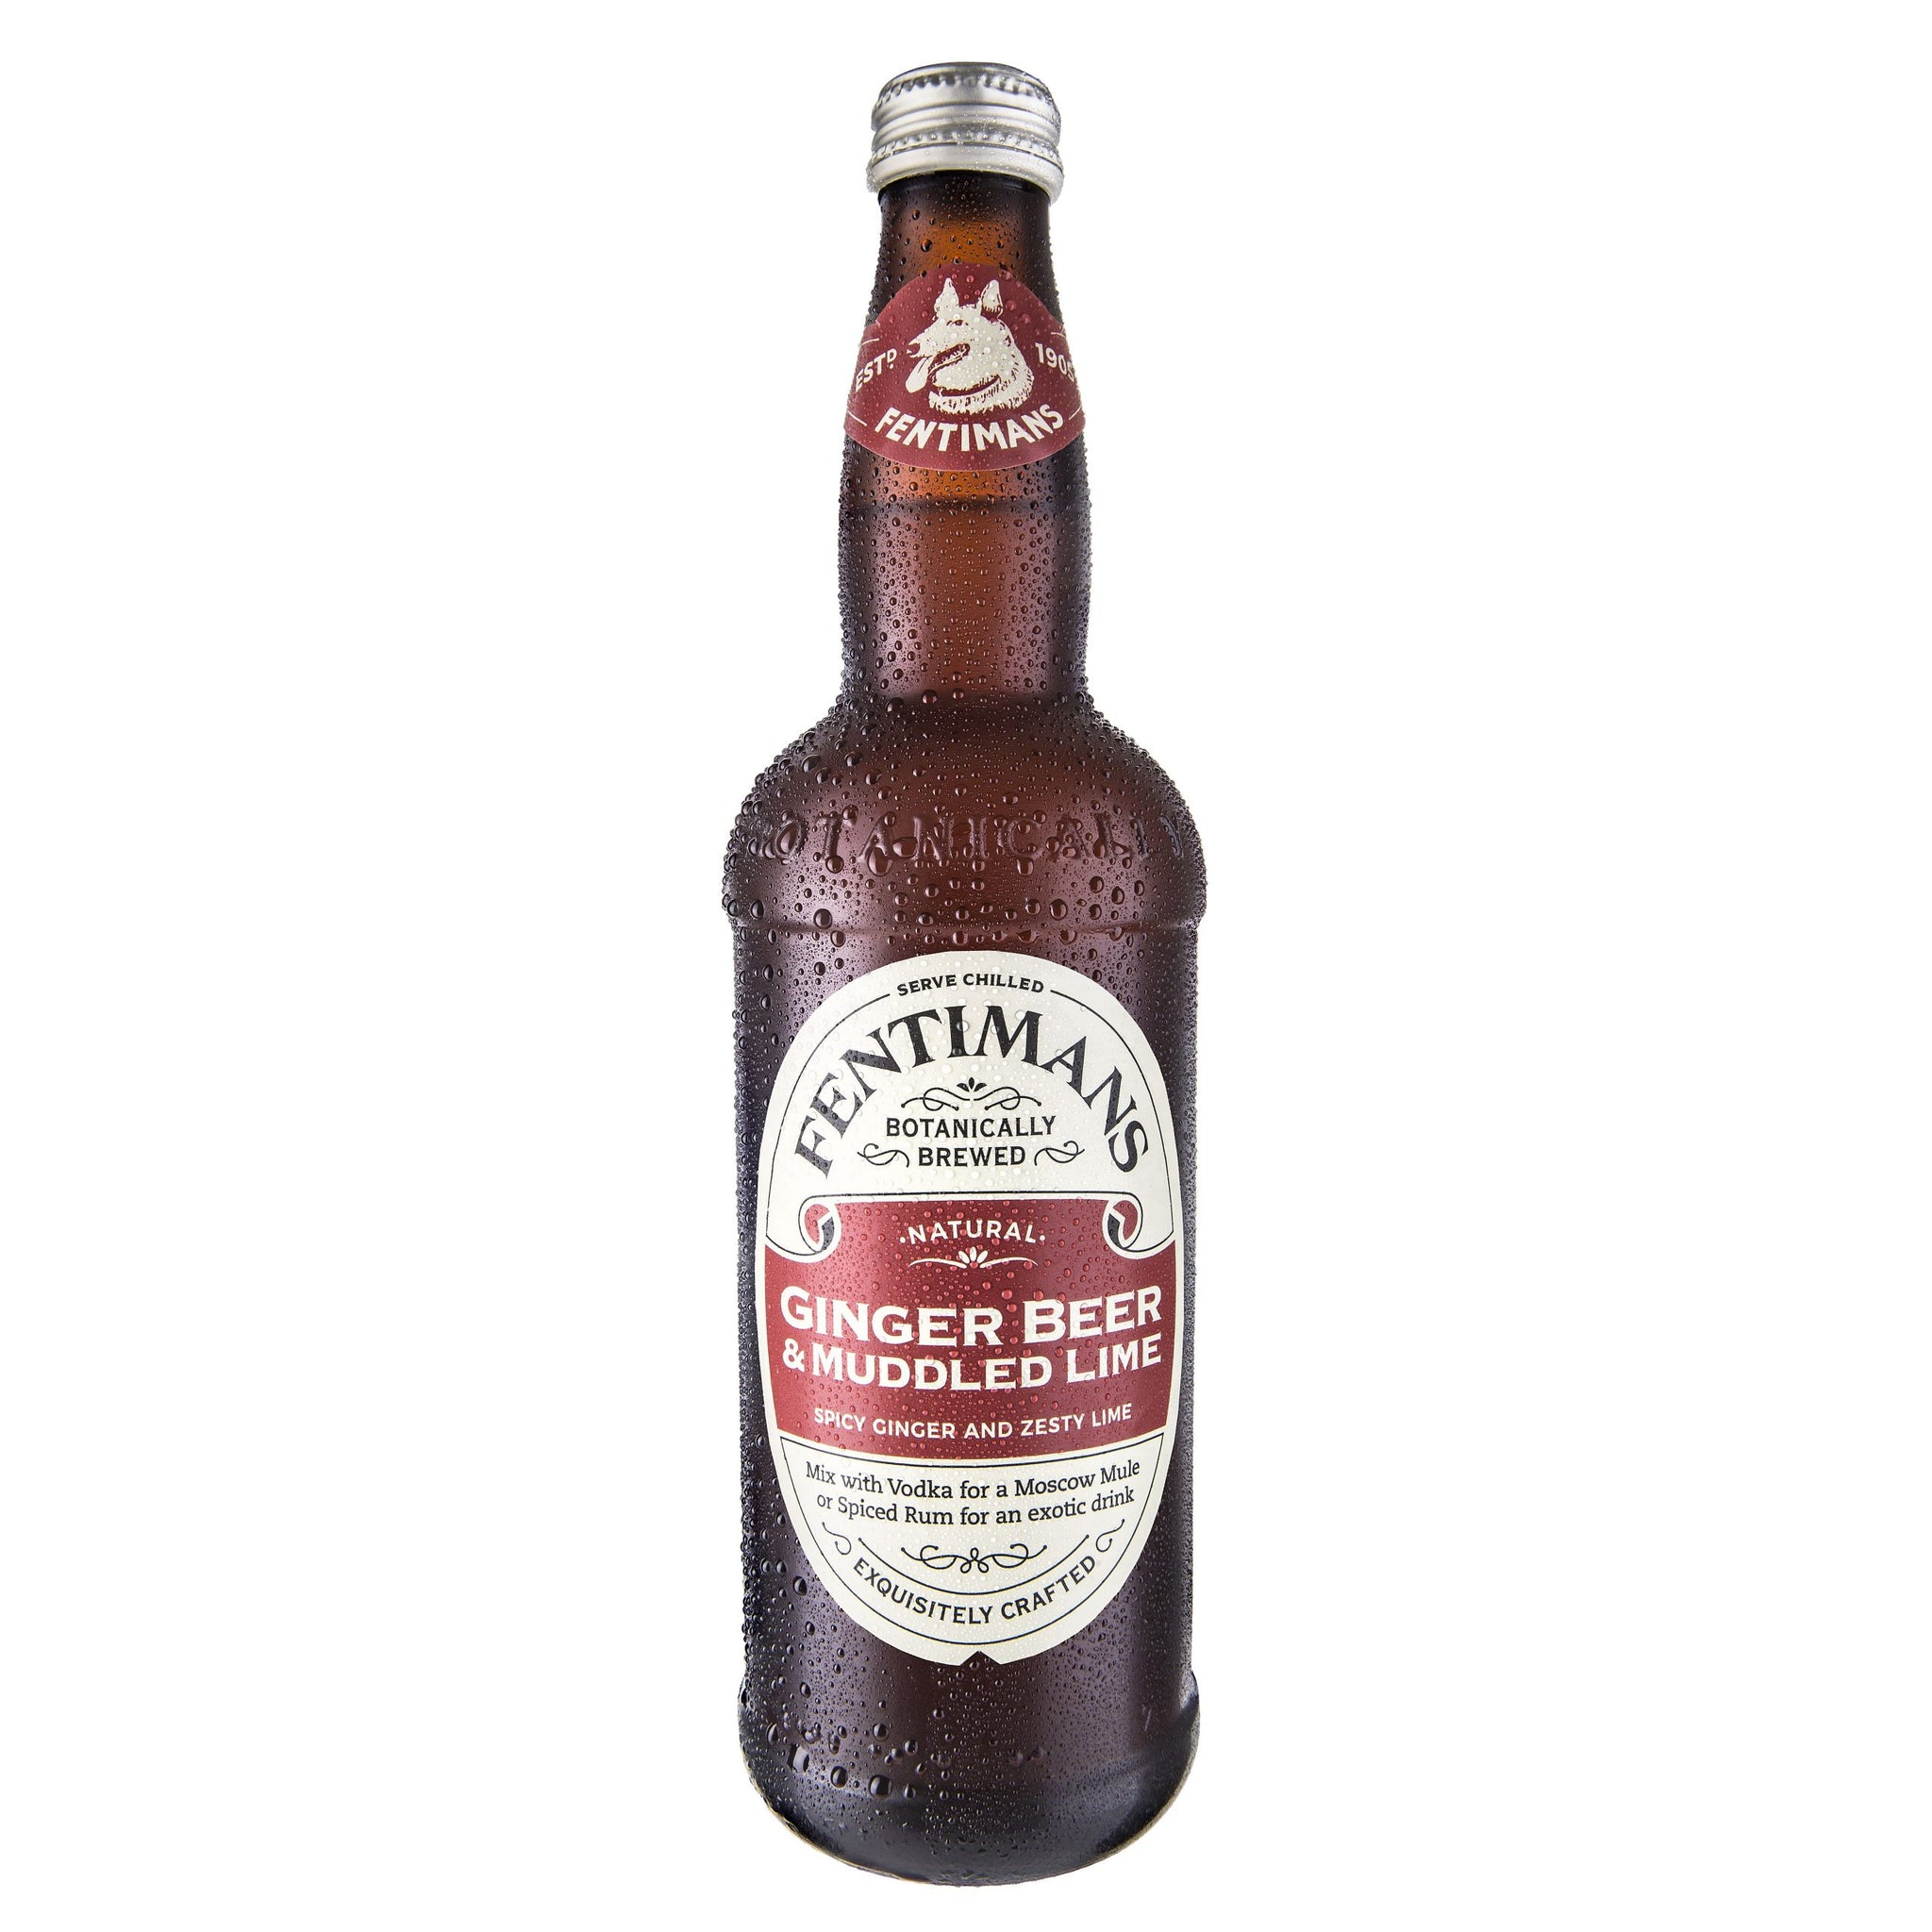 Fentimans Ginger Beer & Muddled Lime - 50cl